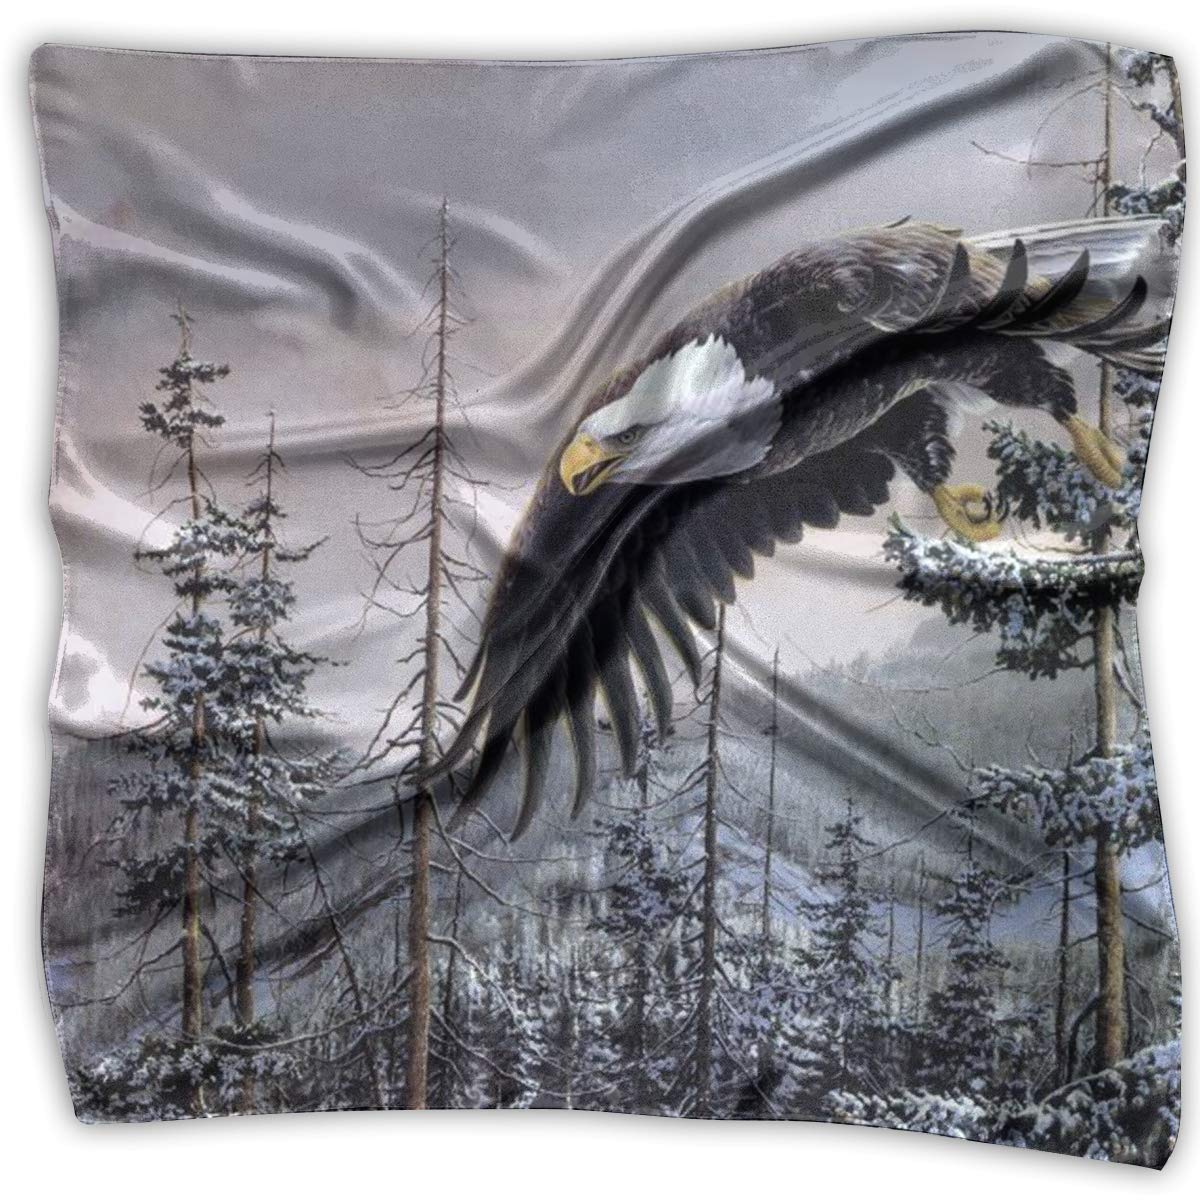 Bald Eagle Square Women Scarves Silk Skin Head Scarf For Spring Summer Size S M O4S8C131